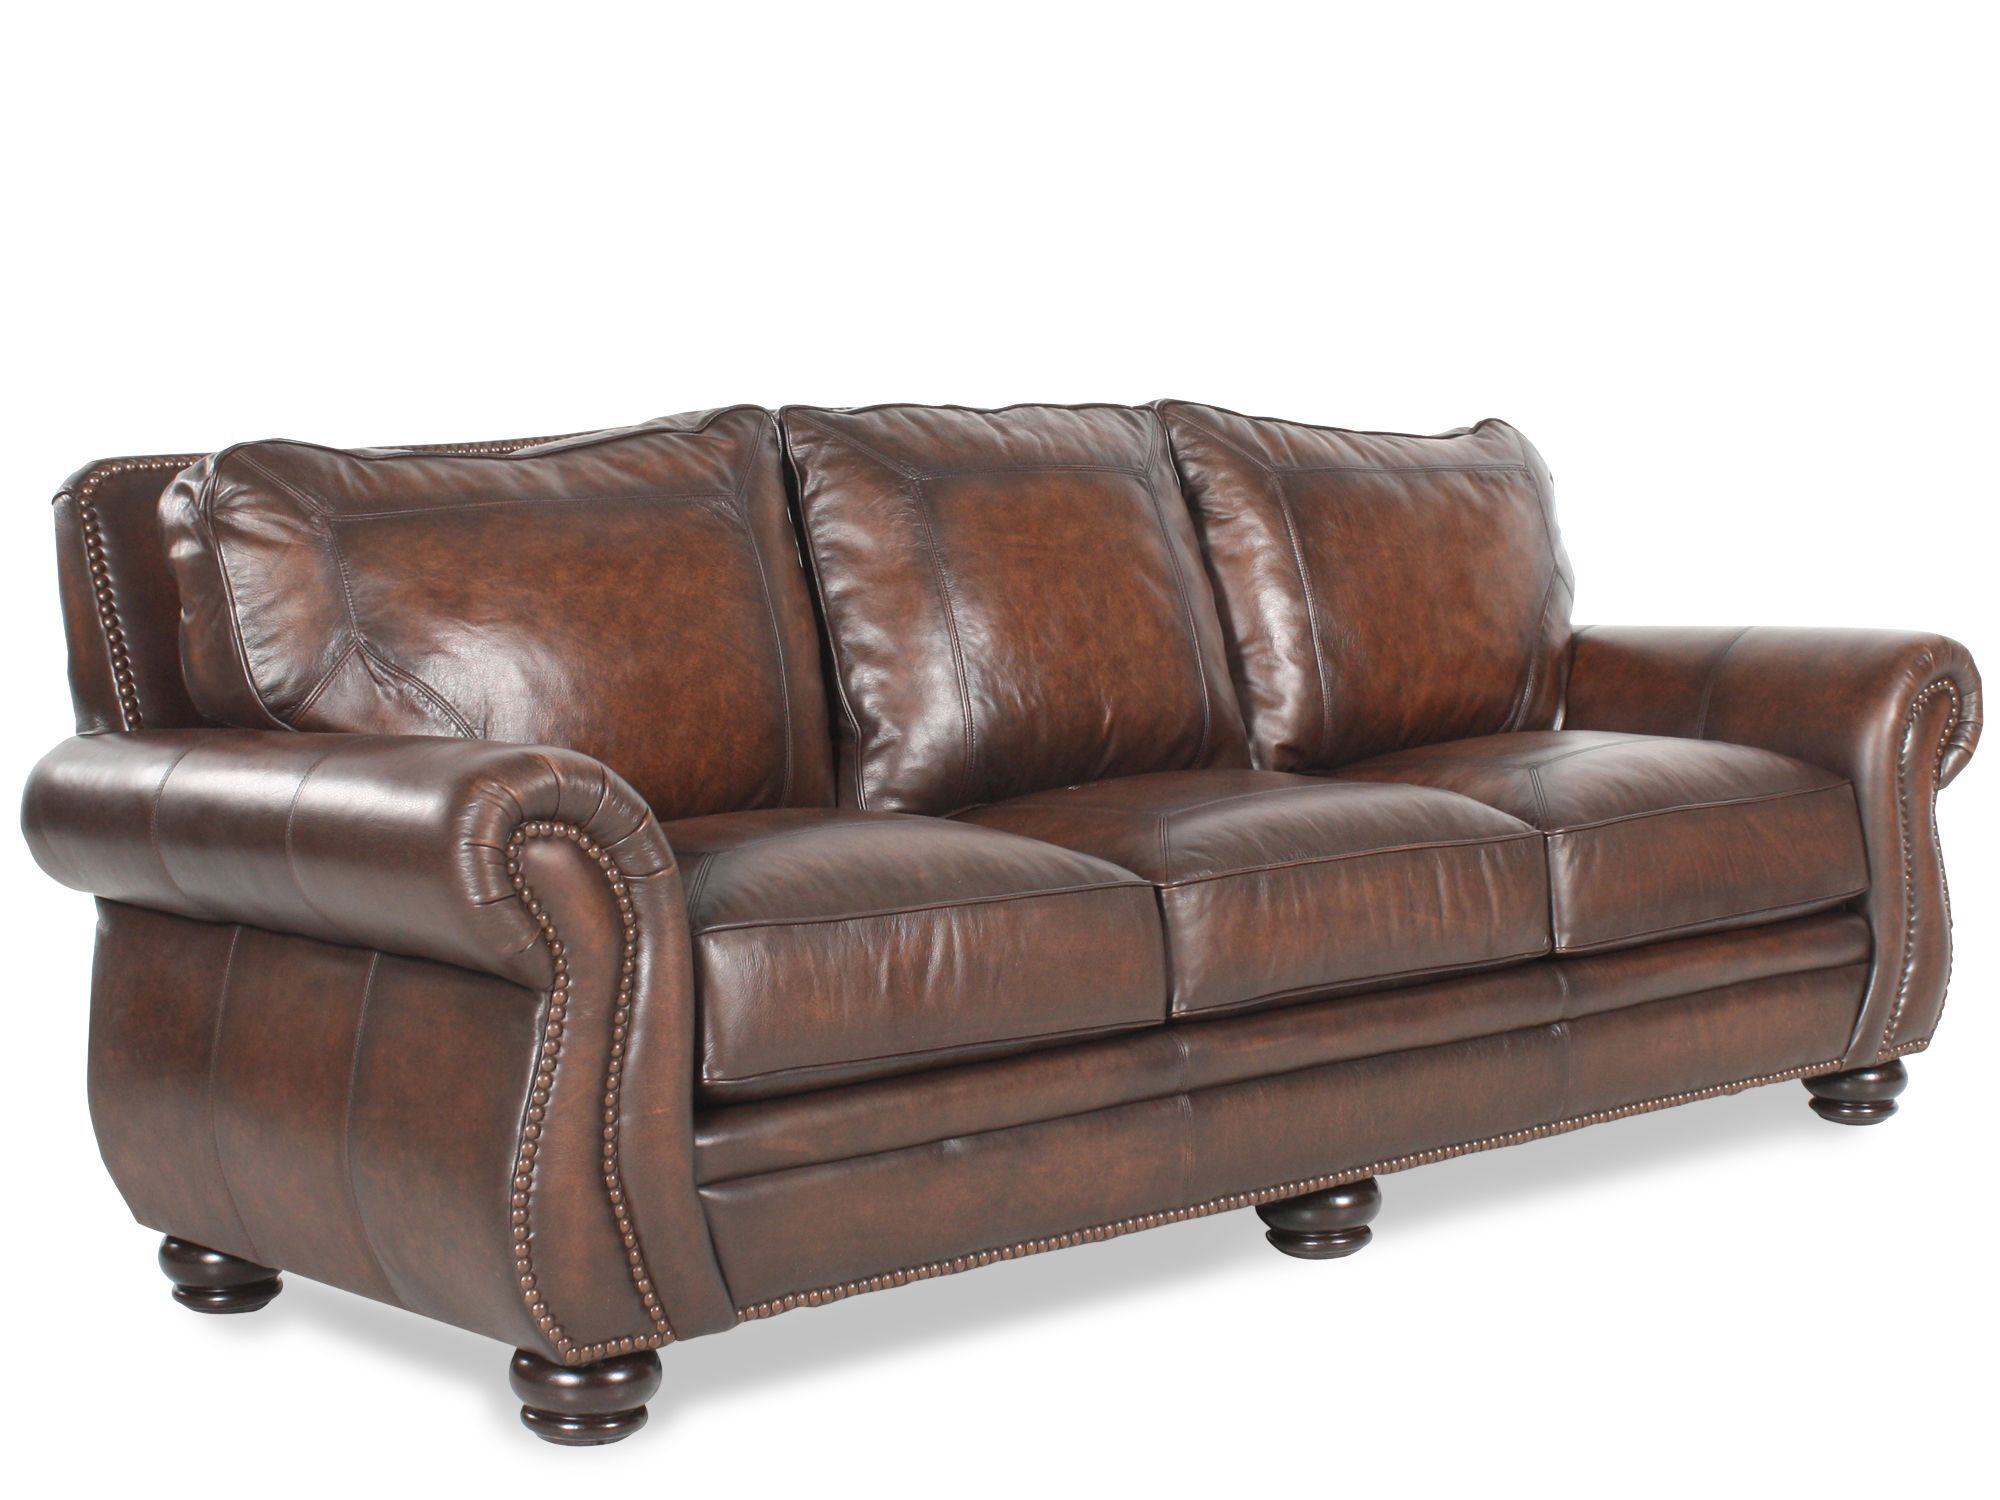 Bernhardt Breckenridge Leather Sofa Part 82